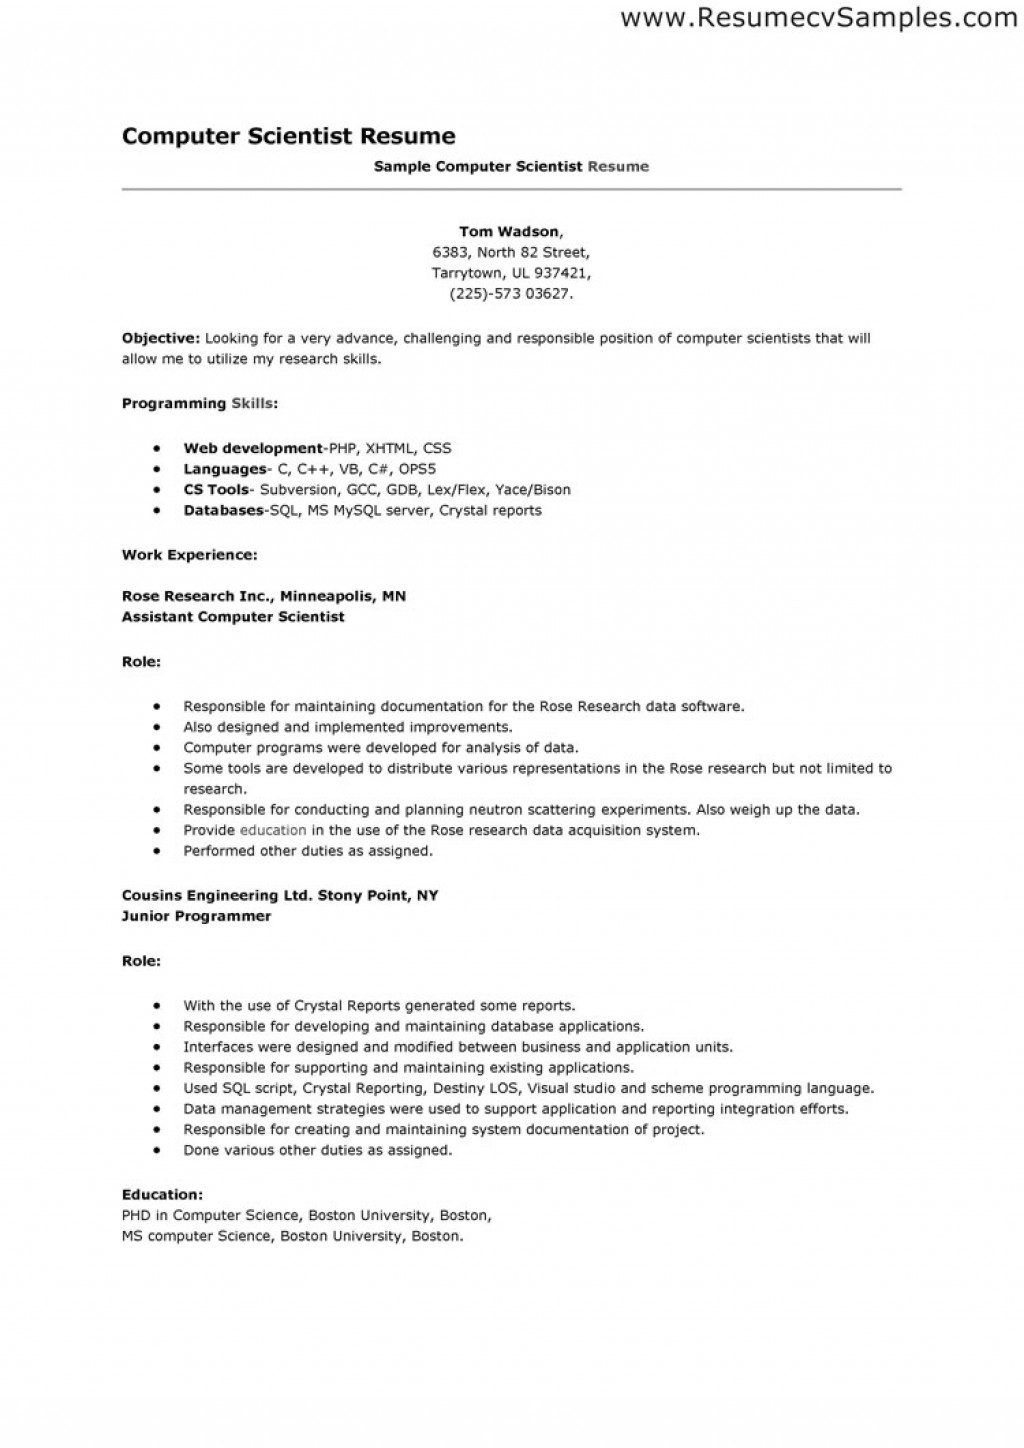 022 Science Research Paper Topics Computer Resume Cognitive Formal Letter For Amazing High School Students Astronomy 9th Graders Large